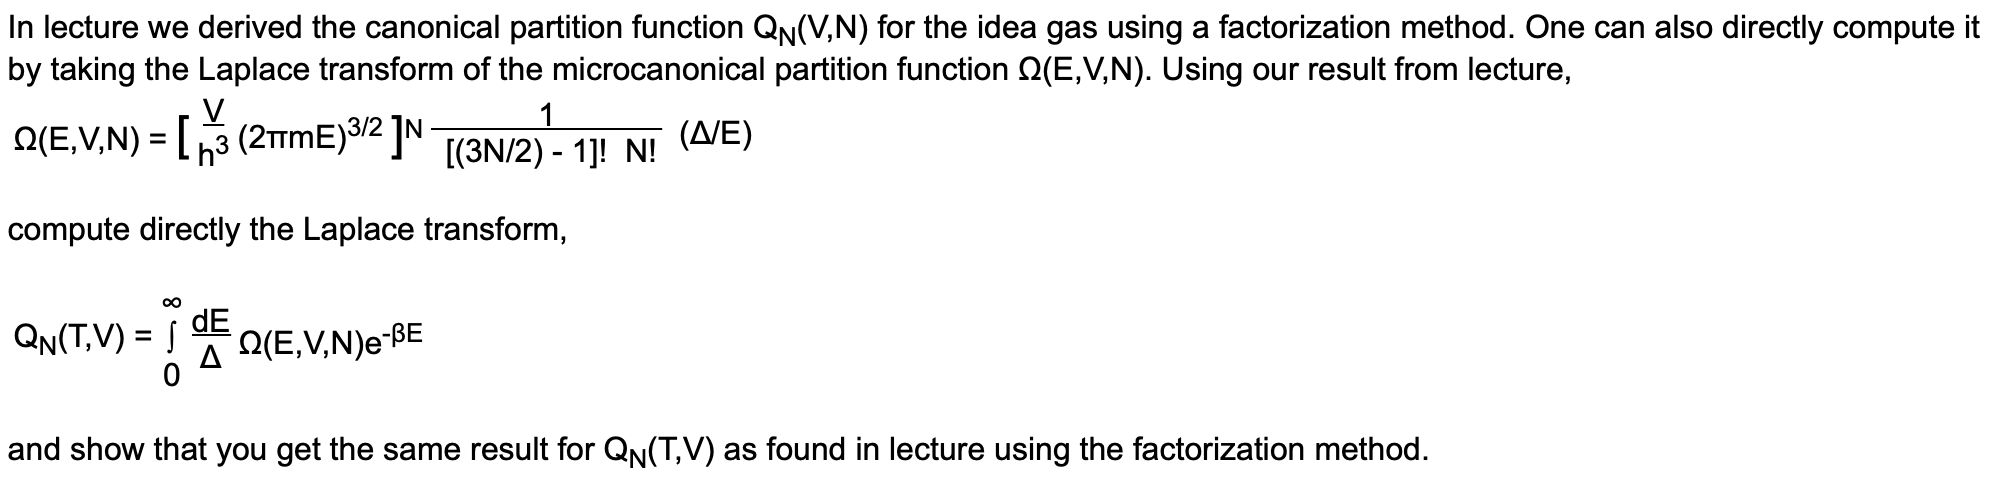 In lecture we derived the canonical partition function QN(V,N) for the idea gas using a factorization method. One can also directly compute it by taking the Laplace transform of the microcanonical partition function Q(E,V,N). Using our result from lecture, Q(E,V,N) = [3 (2TME)3/2 ]N [(3N/2) - 1]! N! (Δ/Ε) compute directly the Laplace transform, QN(T,V) =   dE A Q(E,V,N)e-BE and show that you get the same result for QN(T,V) as found in lecture using the factorization method.